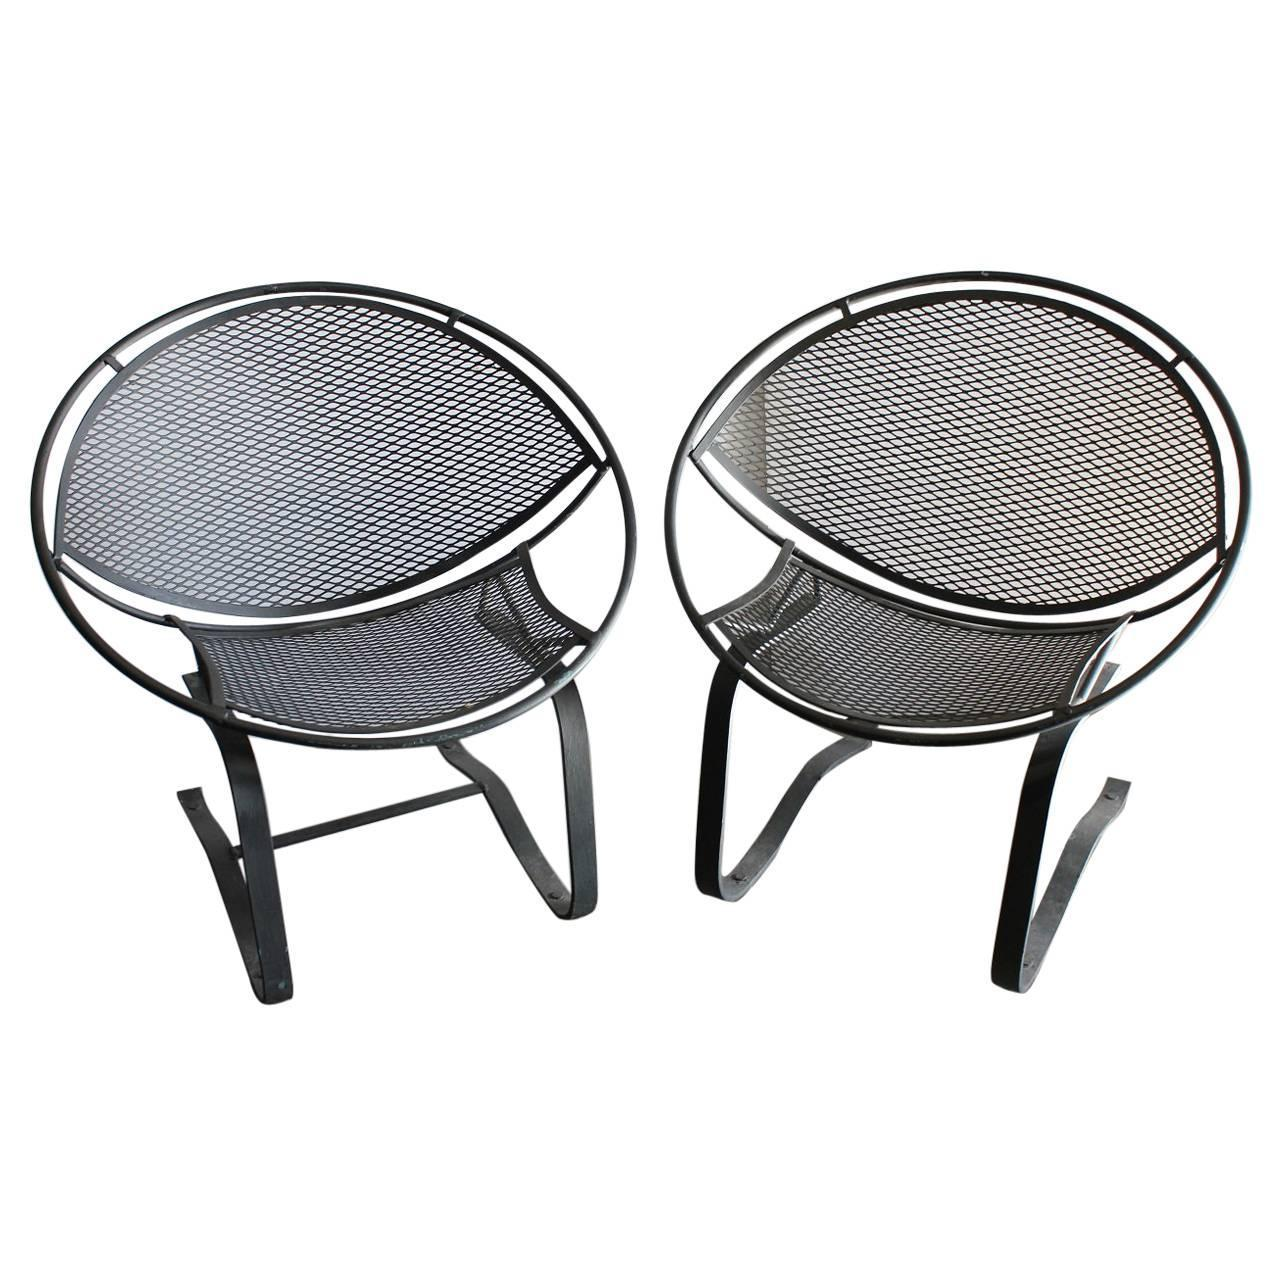 "Midcentury Garden Chairs ""Radar"" by Salterini For Sale at 1stdibs"